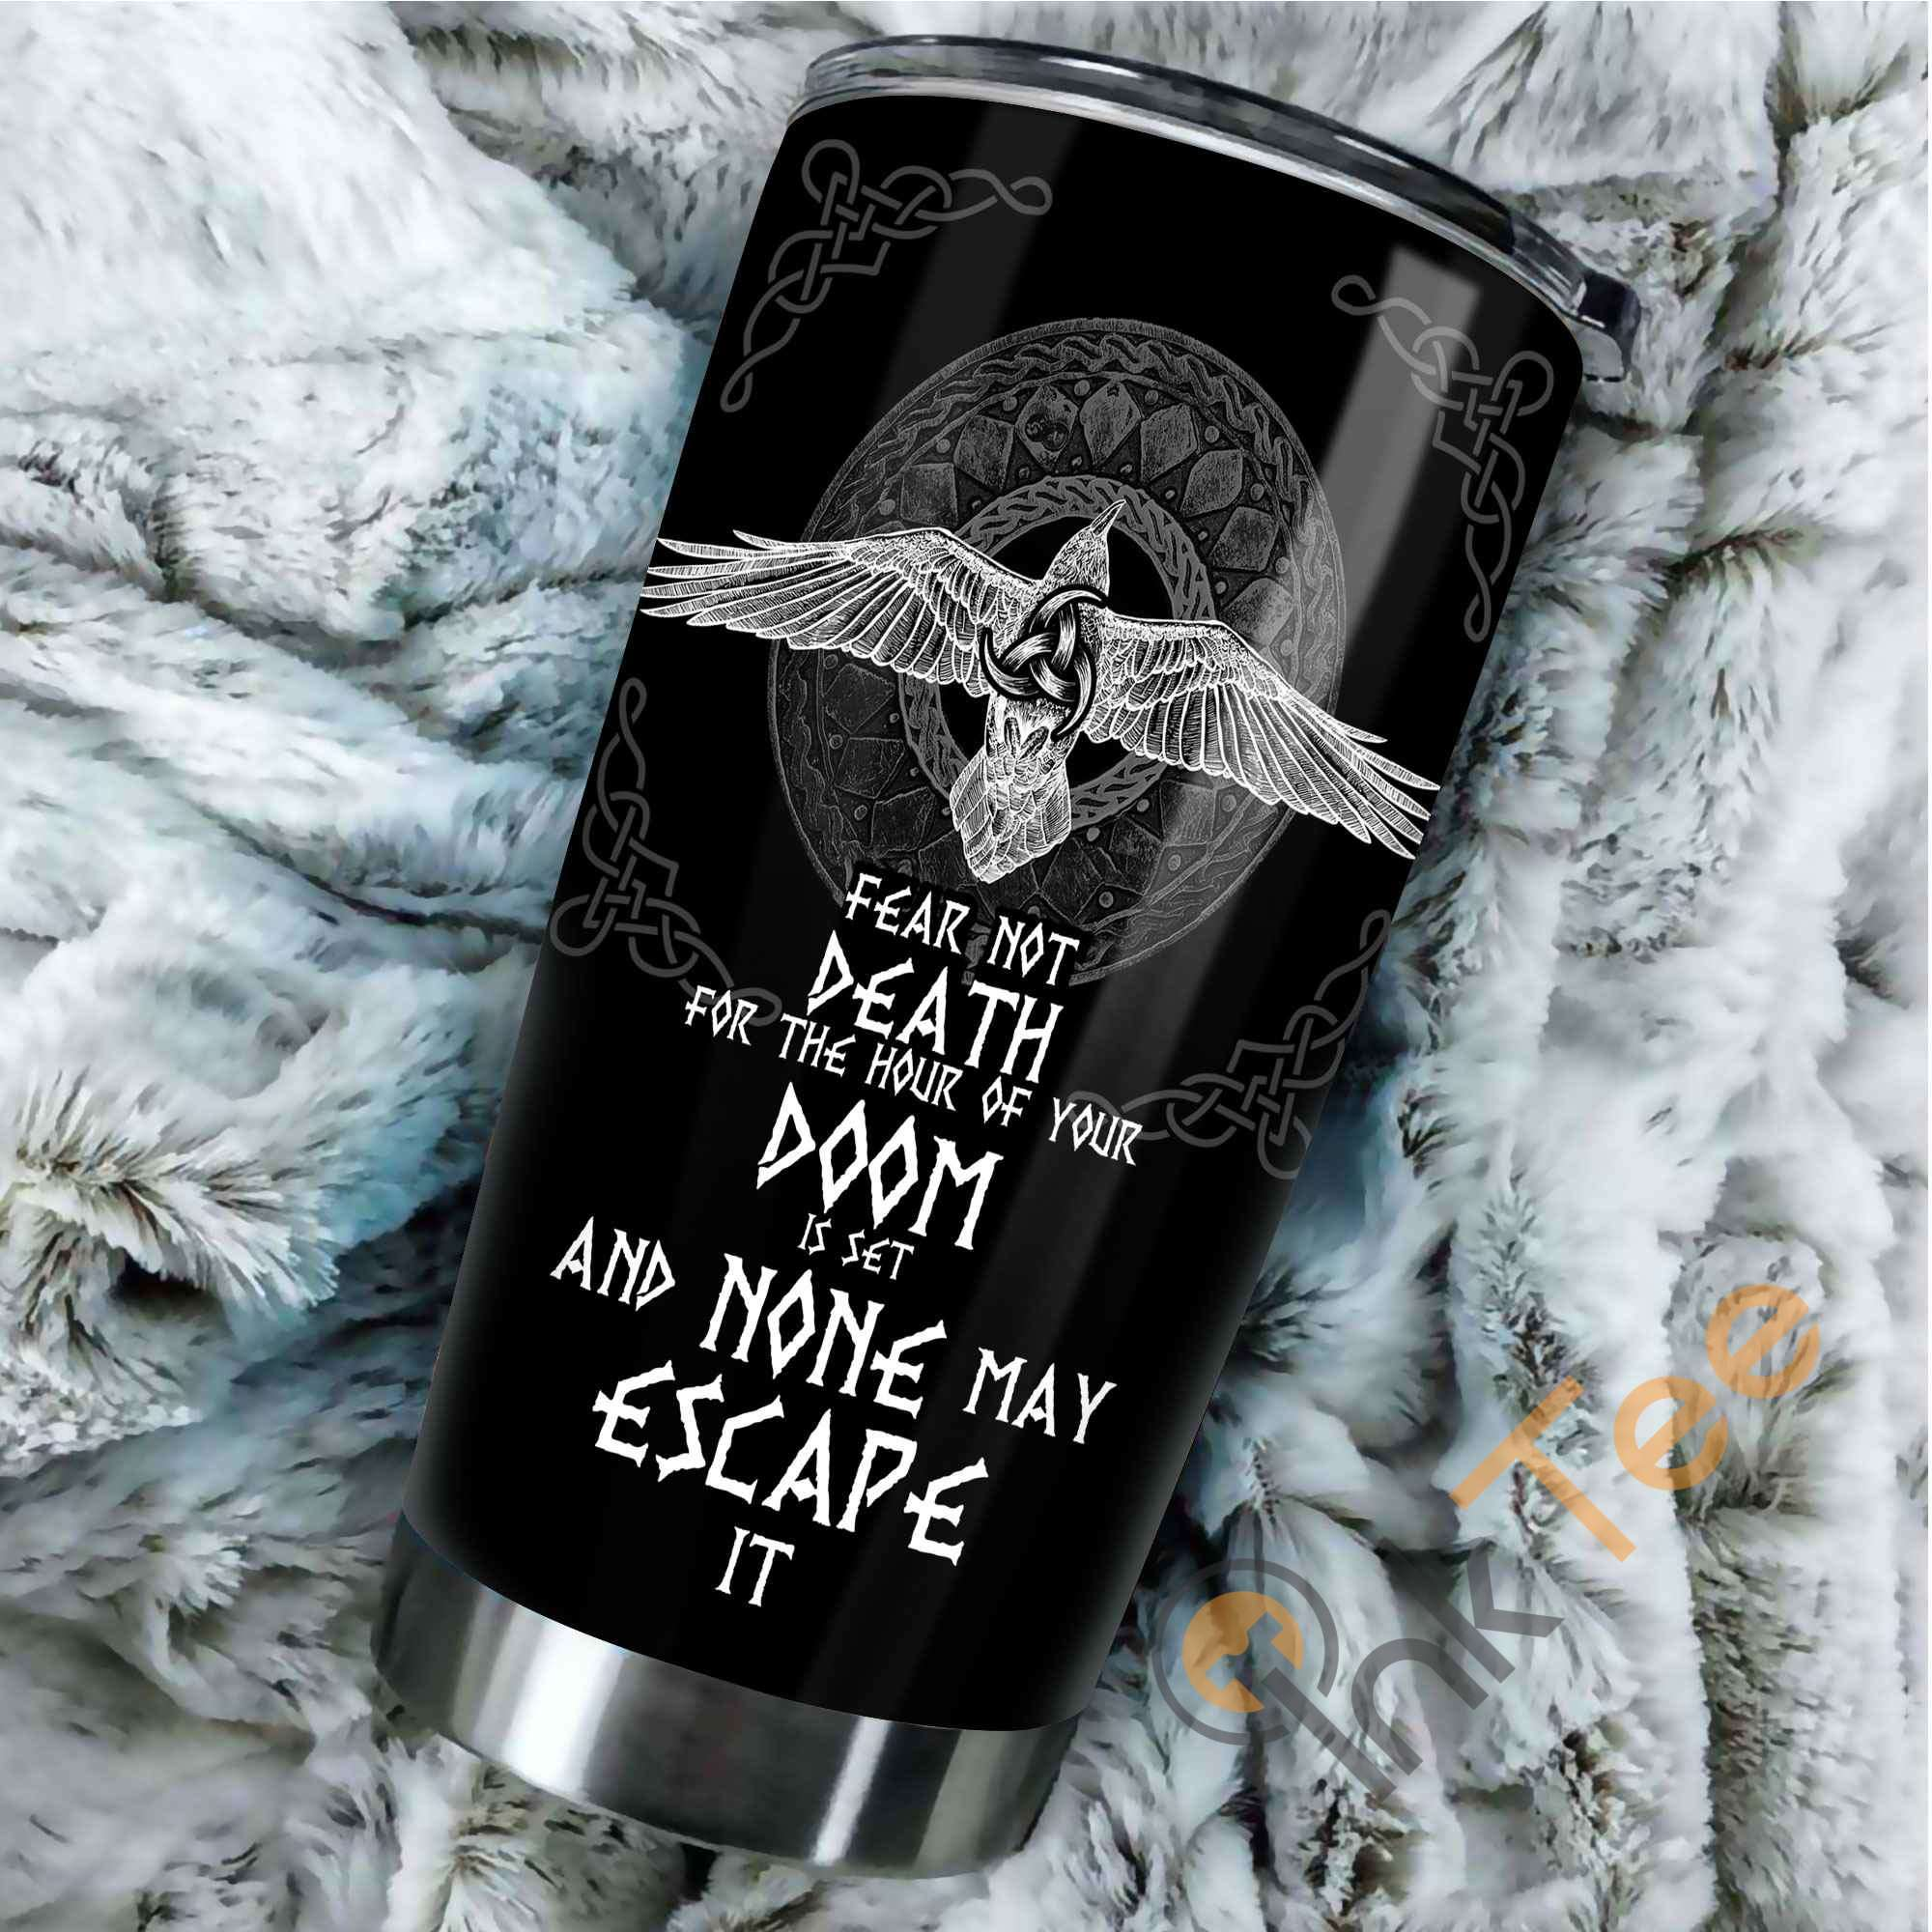 Fear Not Death For The Hour Of Your Doom Amazon Best Seller Sku 3307 Stainless Steel Tumbler